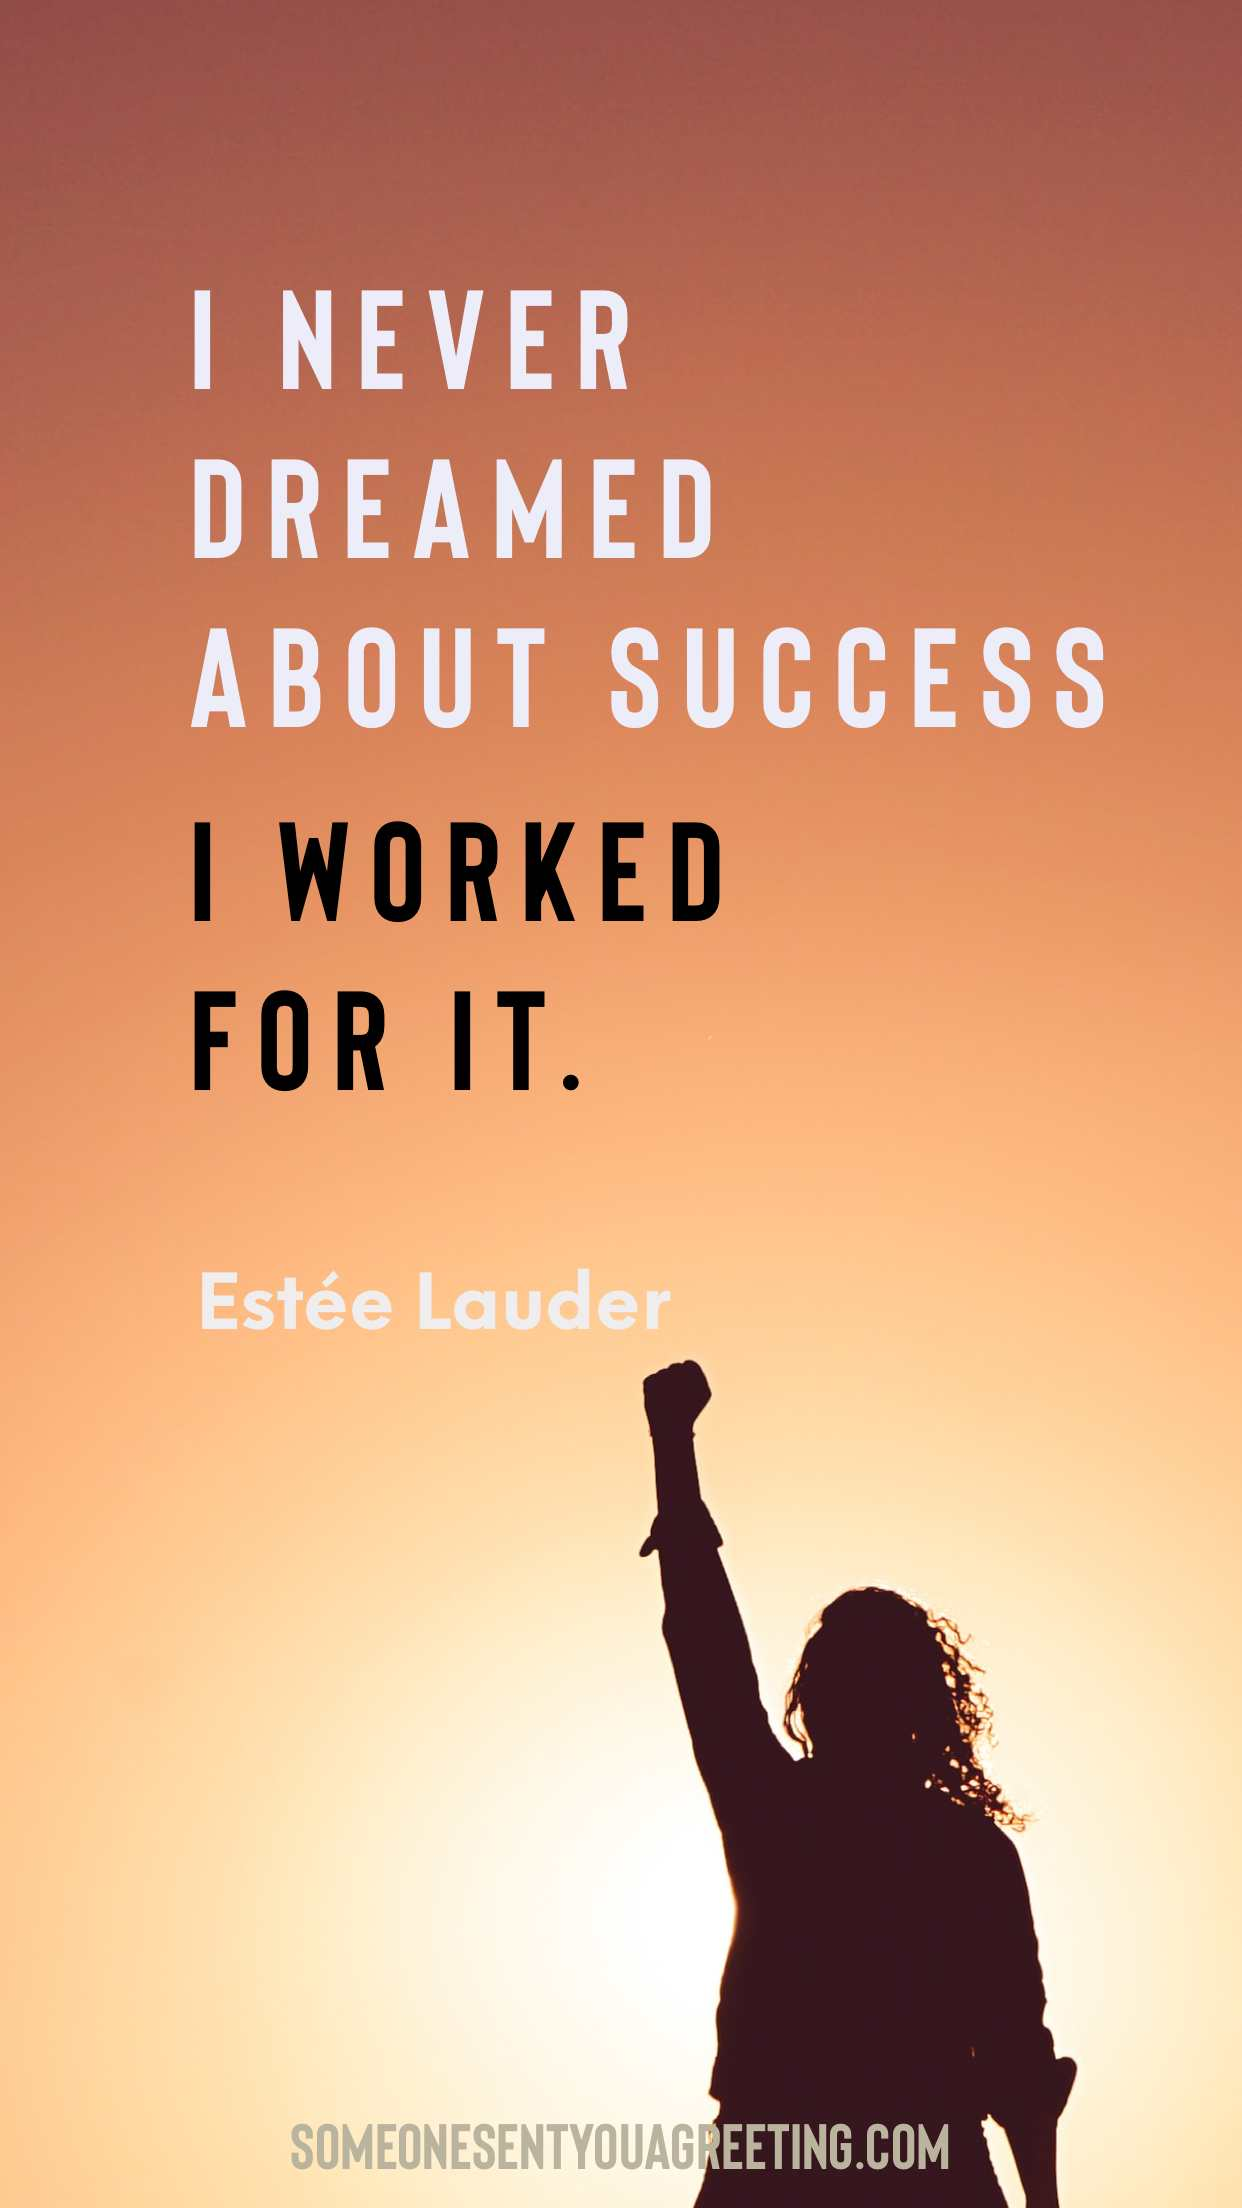 I worked for success Estée Lauder empowering quote